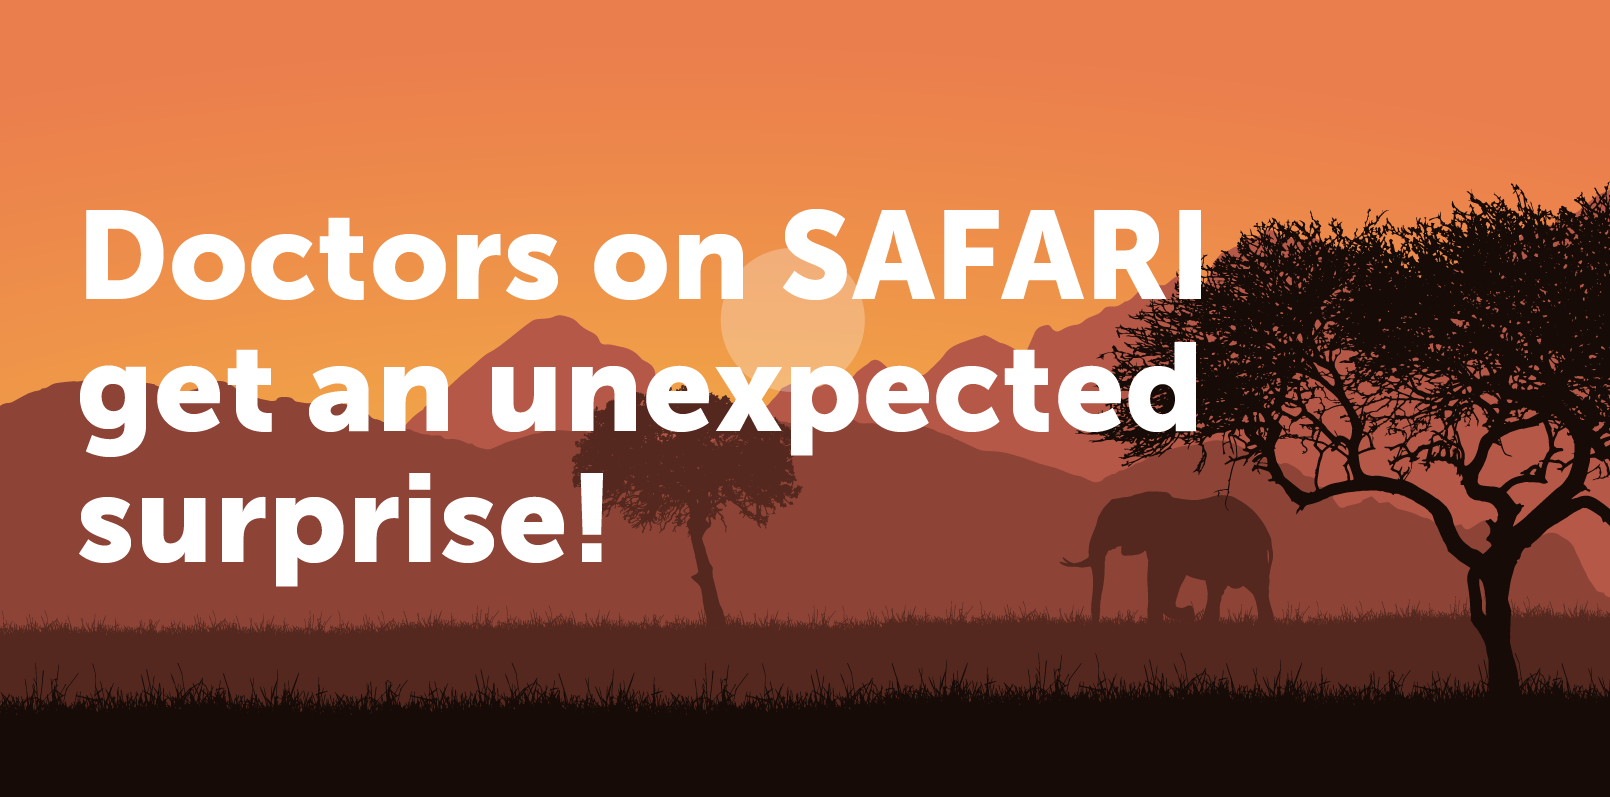 Doctors on SAFARI Get an Unexpected Surprise